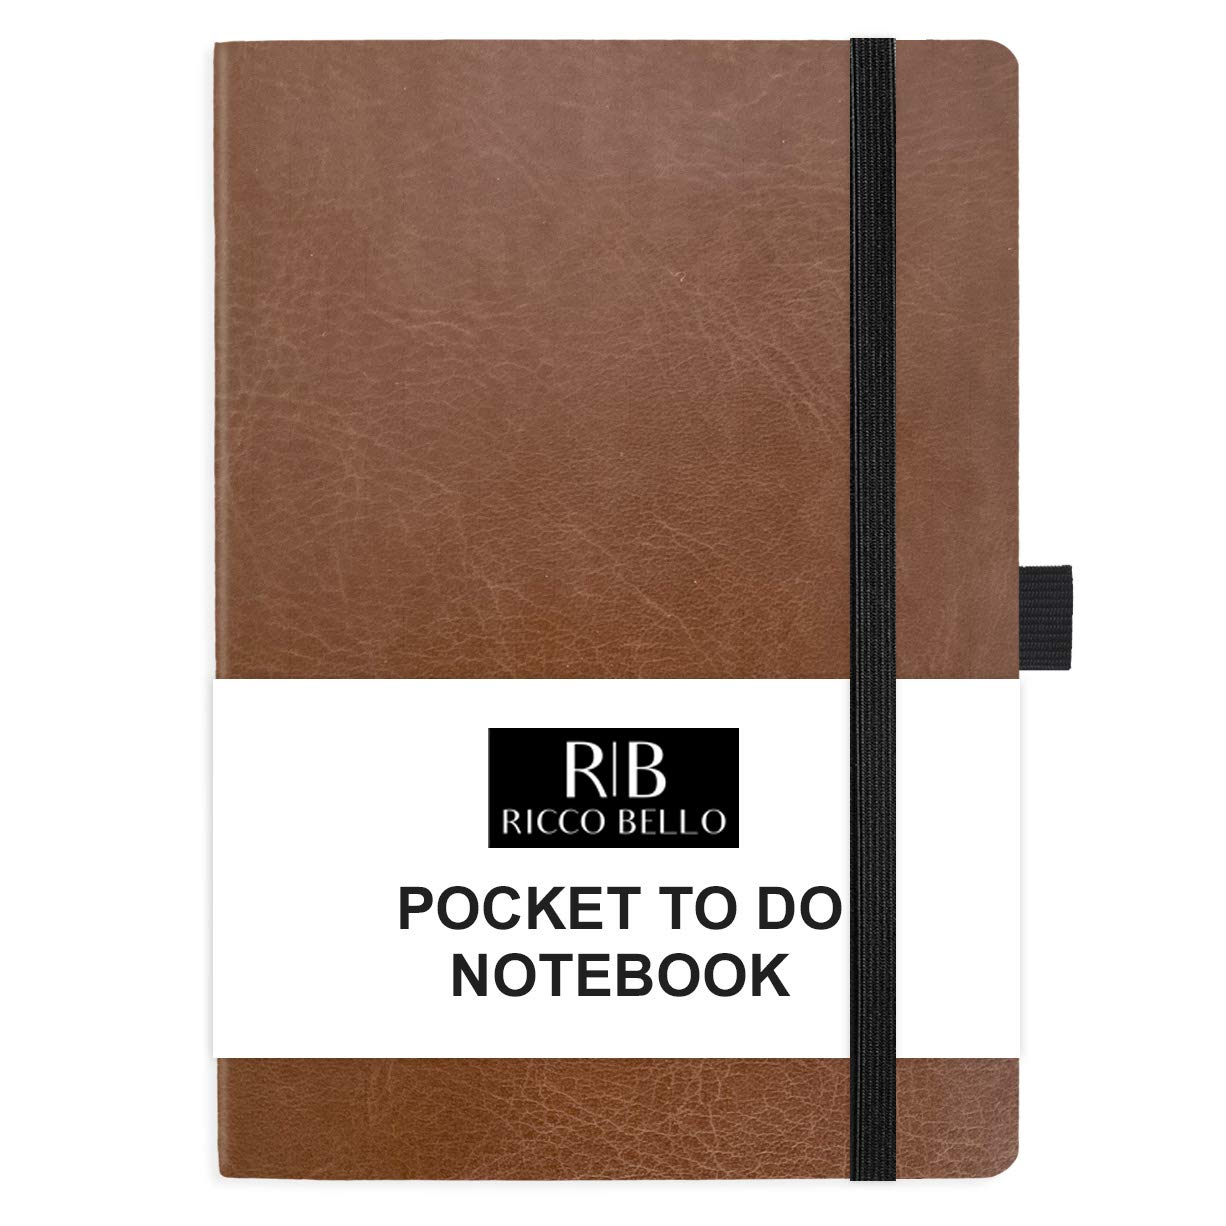 RICCO BELLO Small Hardcover Pocket to Do List Notebook, Elastic Band Closure, Pen Loop, Ribbon Bookmark, Storage Pocket, Vegan Leather 4.25 x 6 inches (Brown)